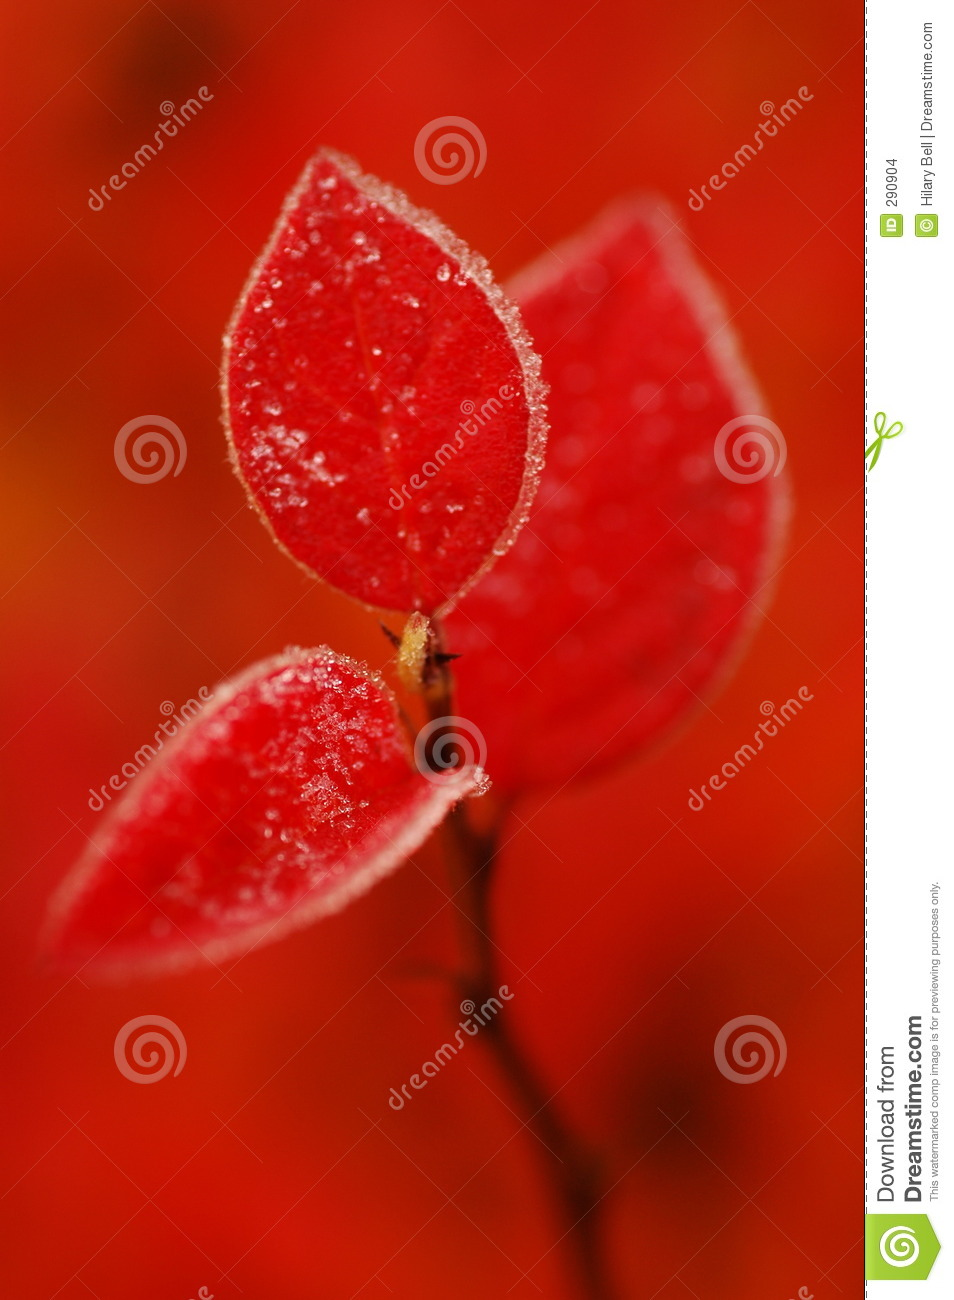 Cotoneasterred